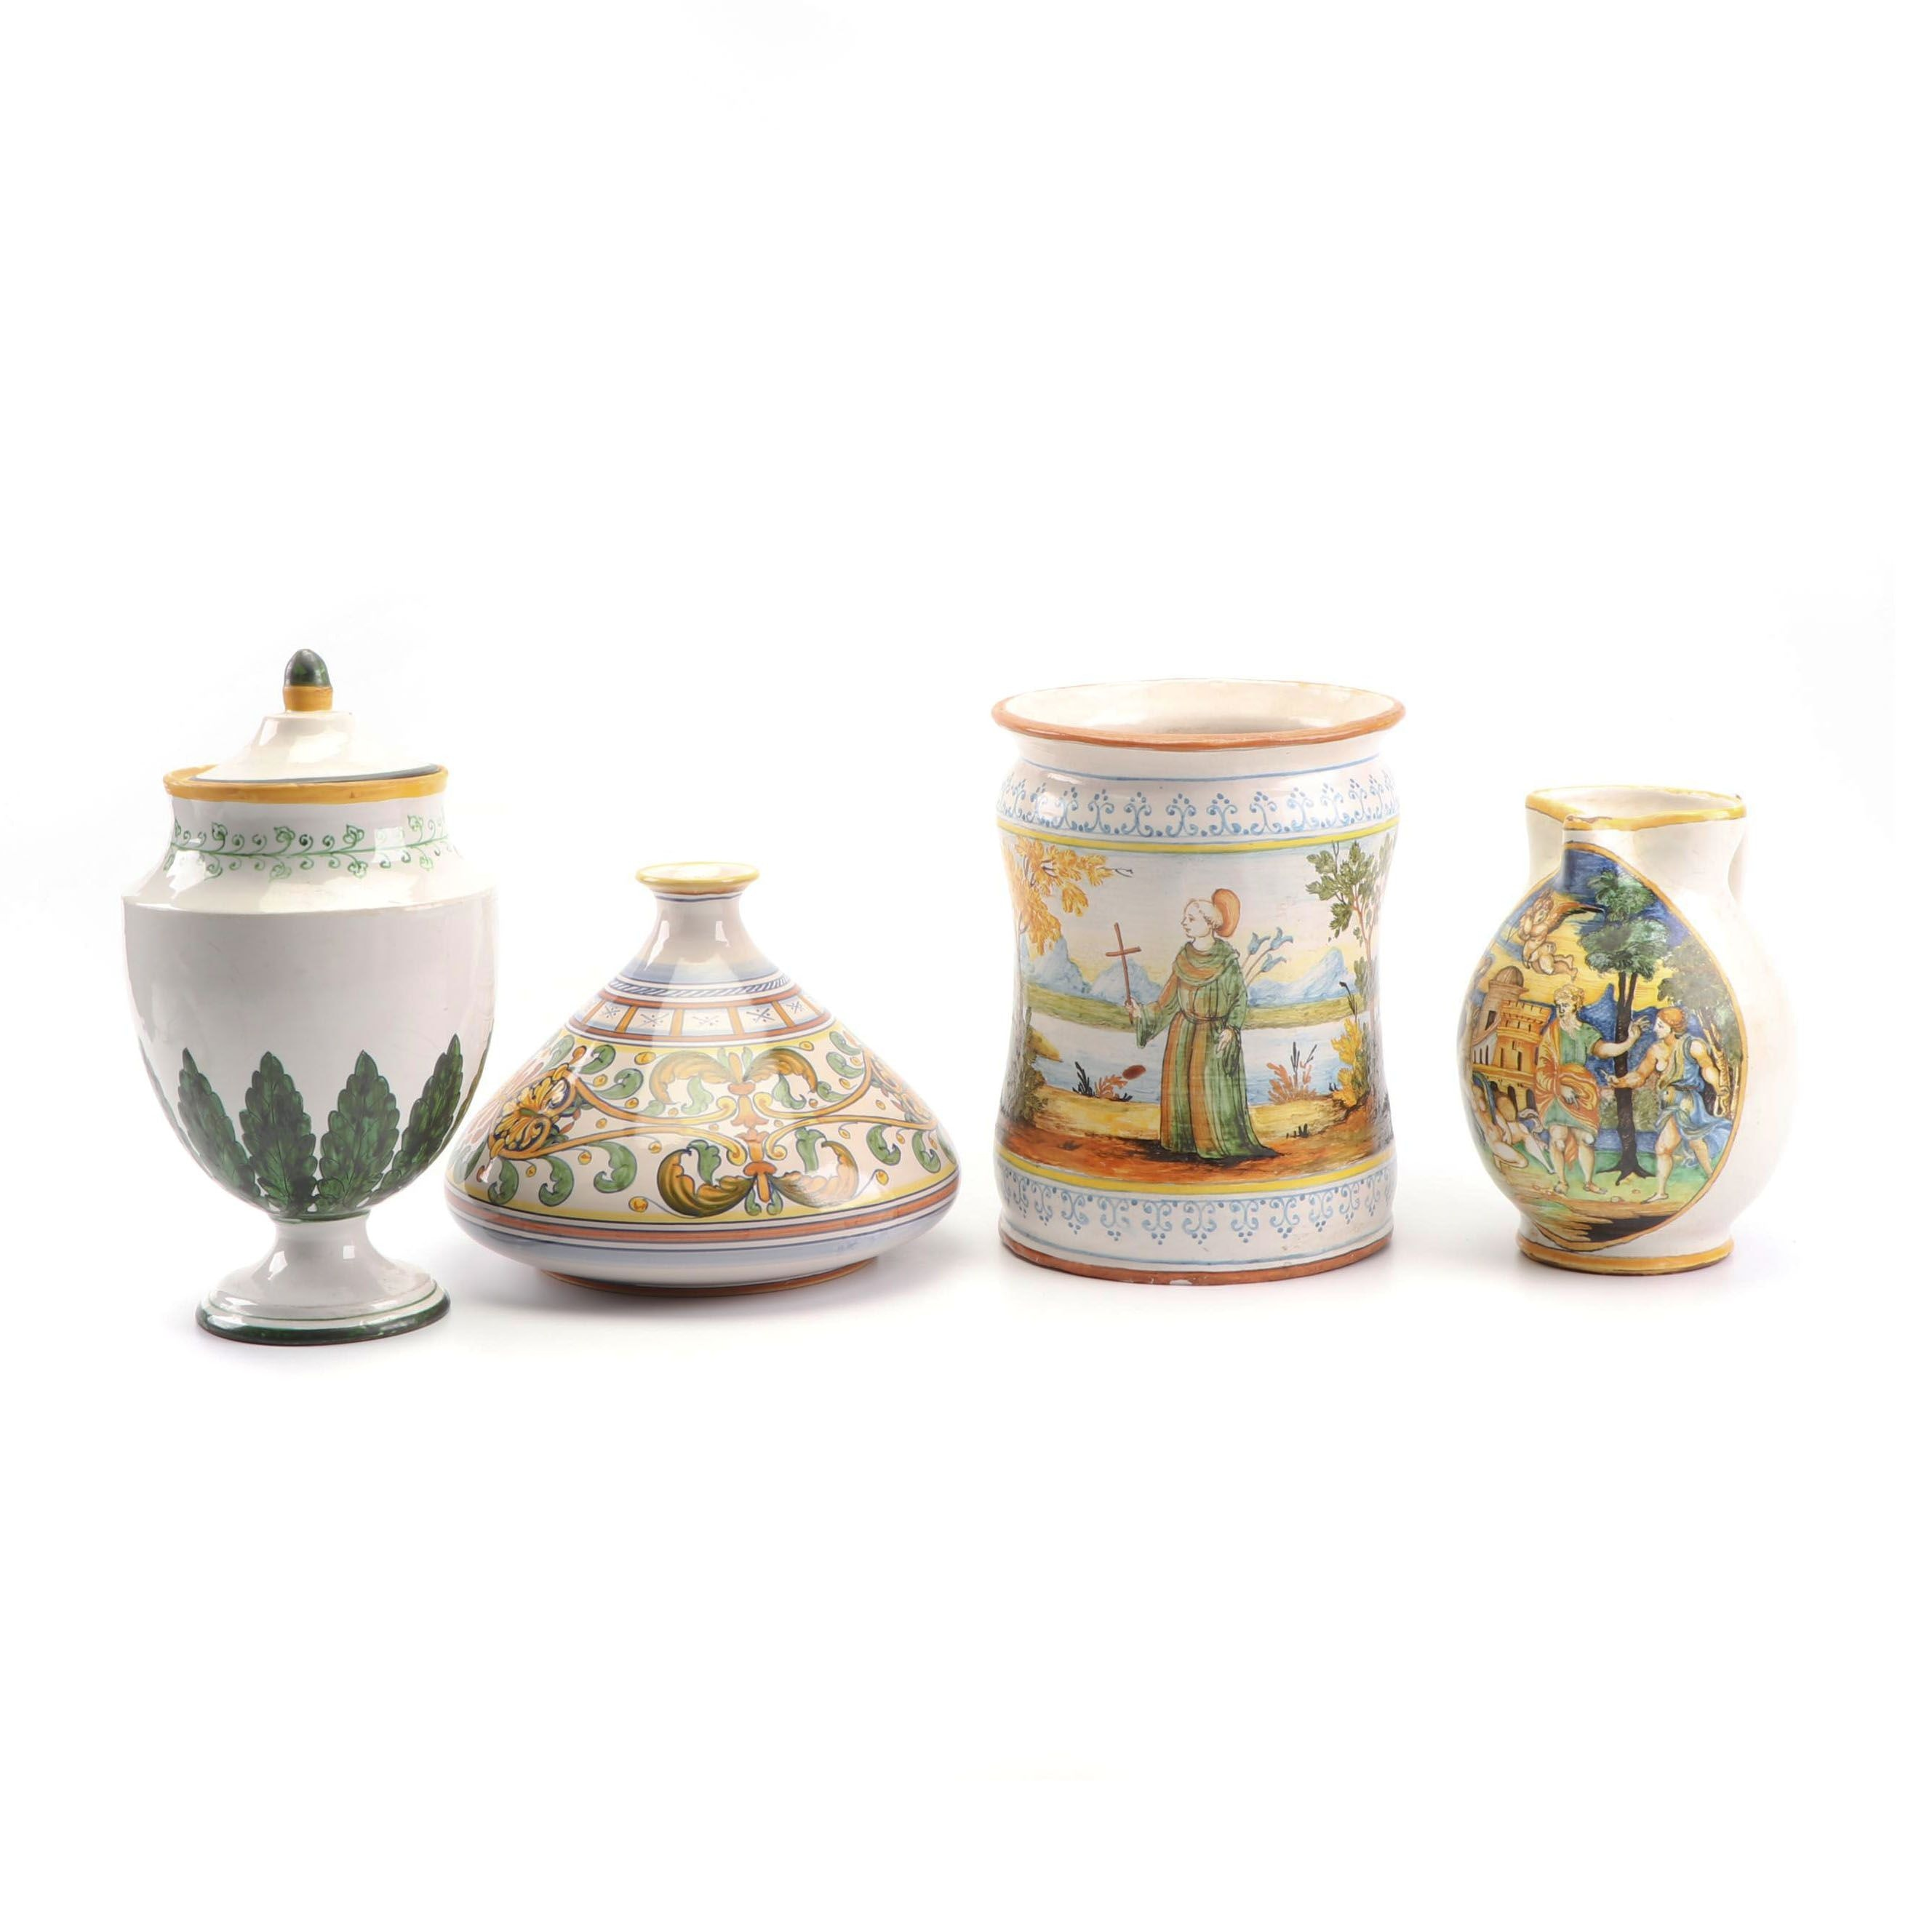 Italian Hand-Painted Faïence Planter and Vases Featuring L'Antica Deruta